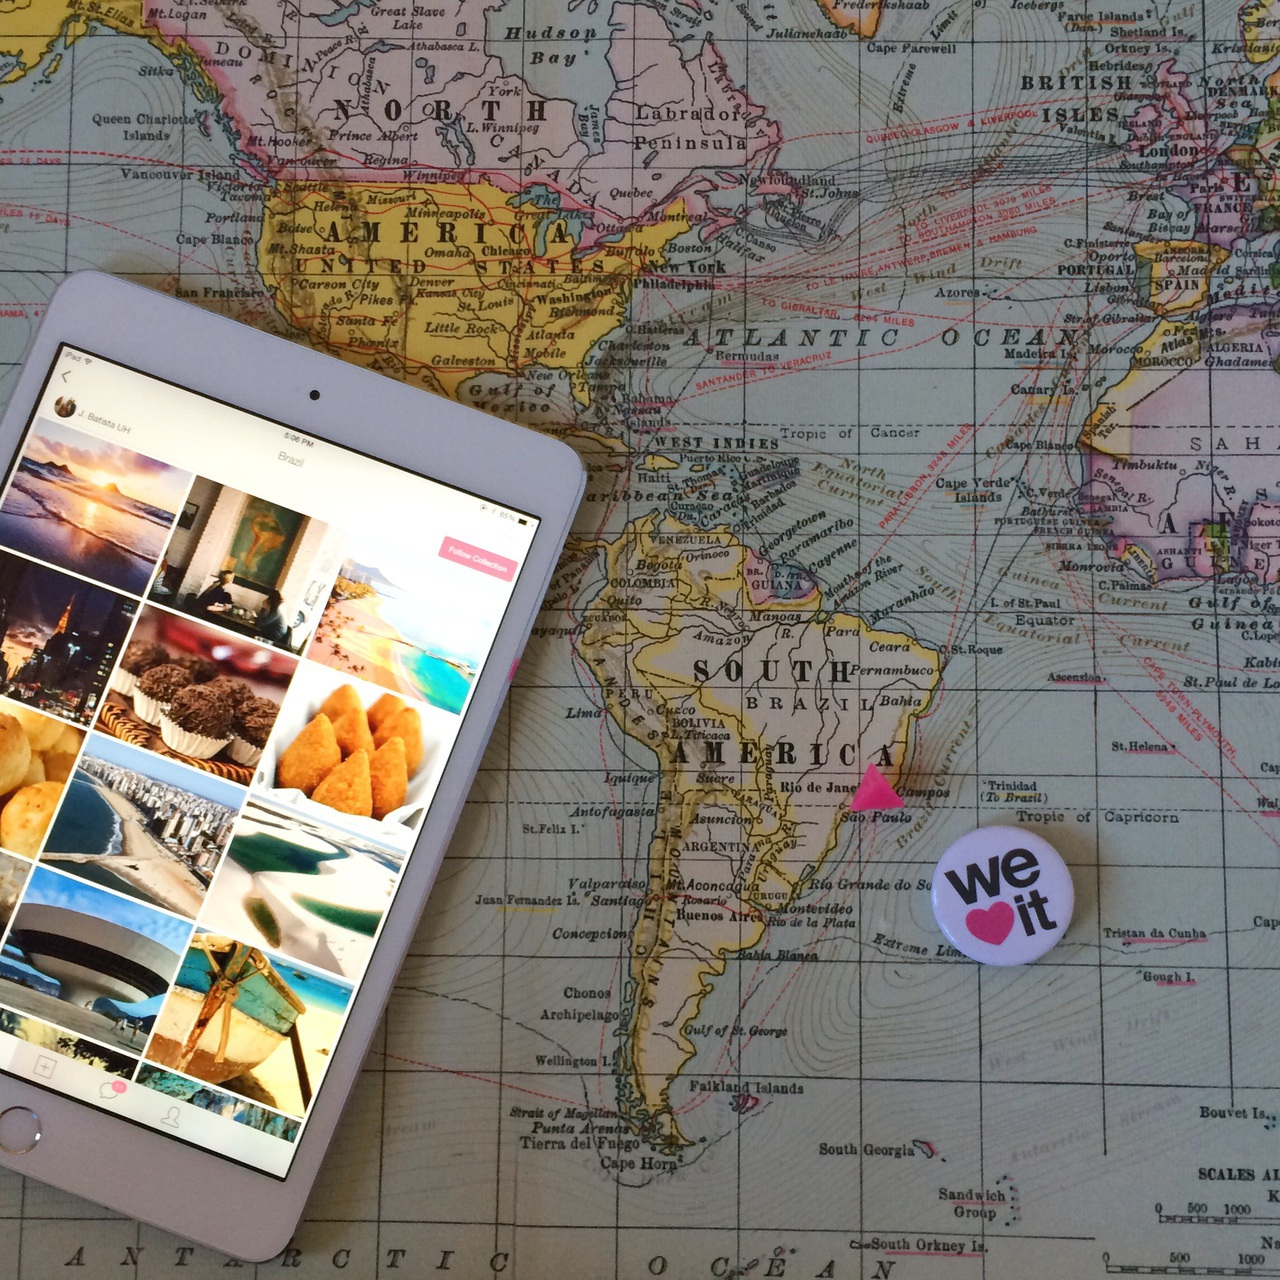 brasil, brazil, ipad mini, map, south america, travel, wanderlust, we heart it, how i heart, we heart it app